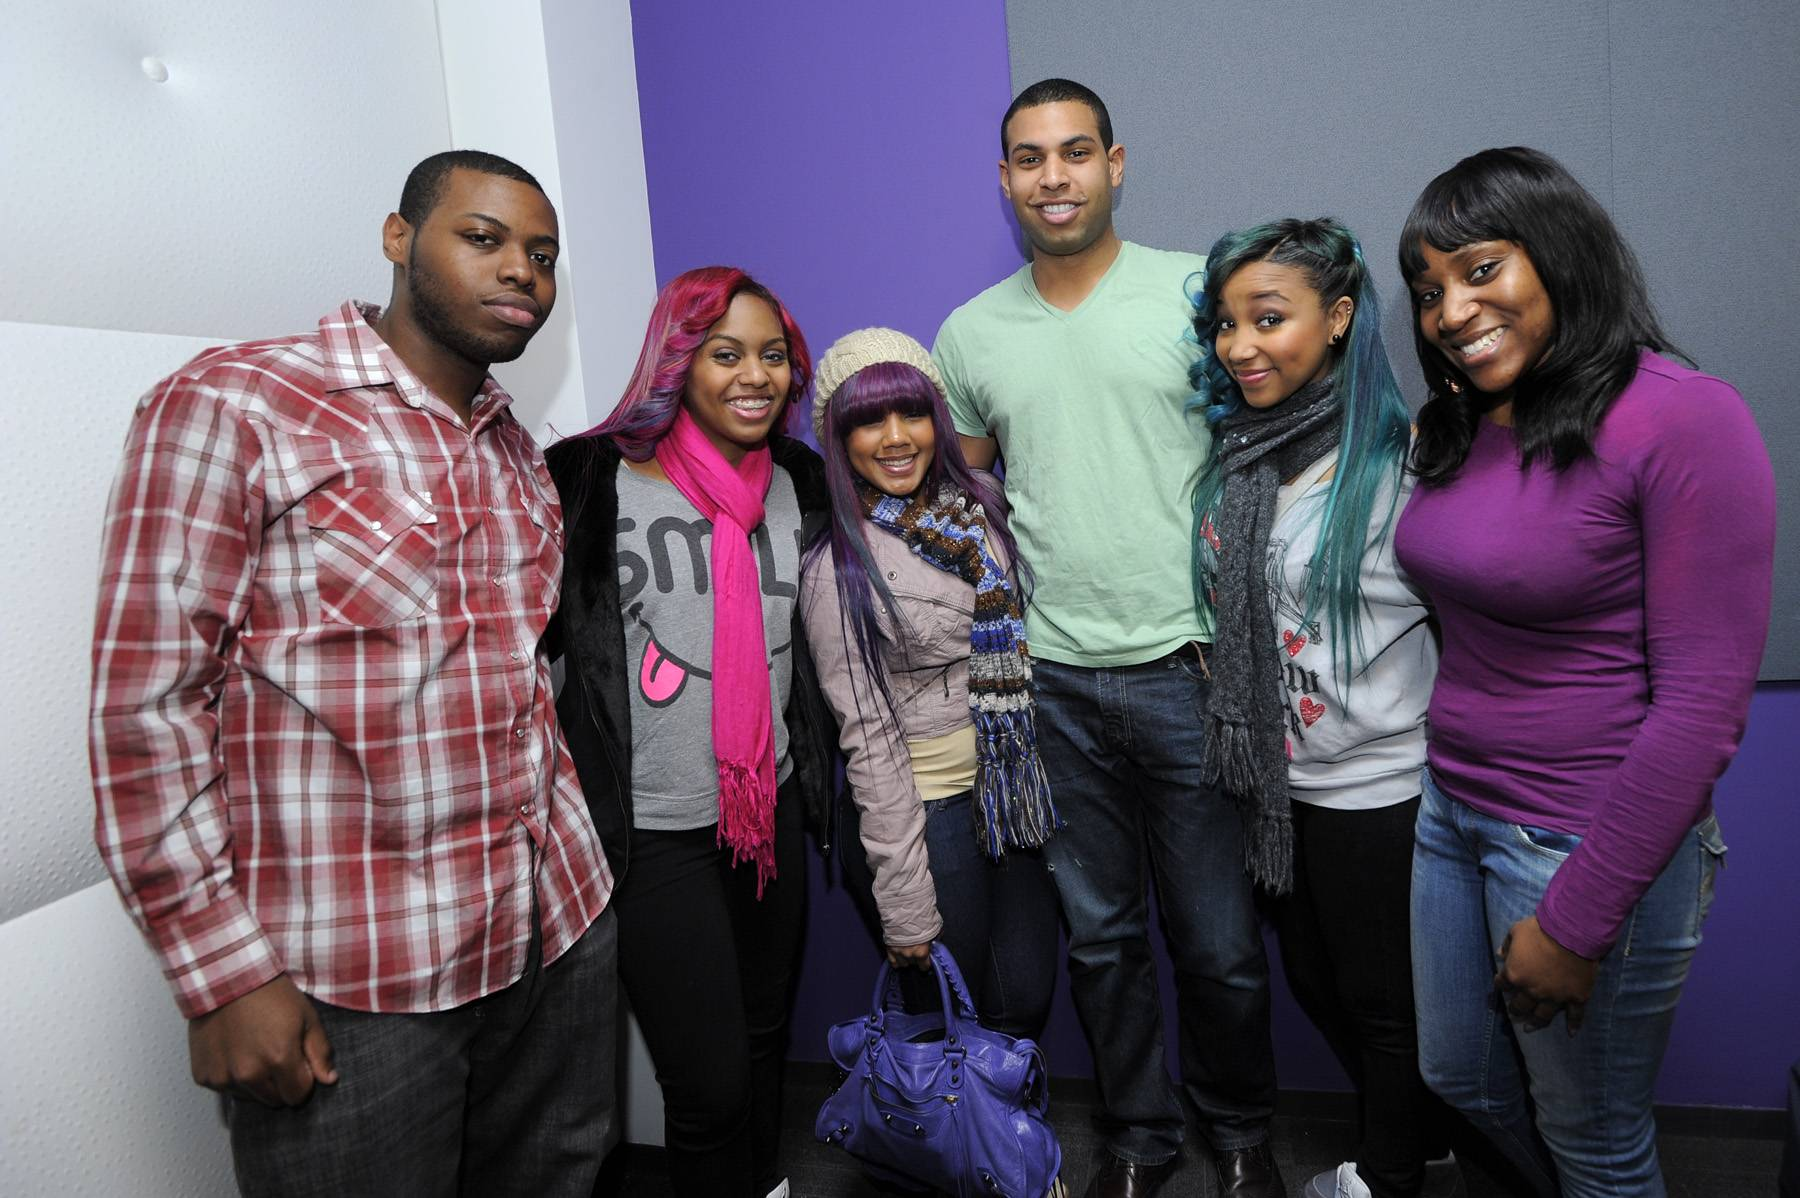 New Fans - Yeah, the OMG Girlz were so impressive that they made fans out of the BET staff!(Photo: John Ricard / BET)